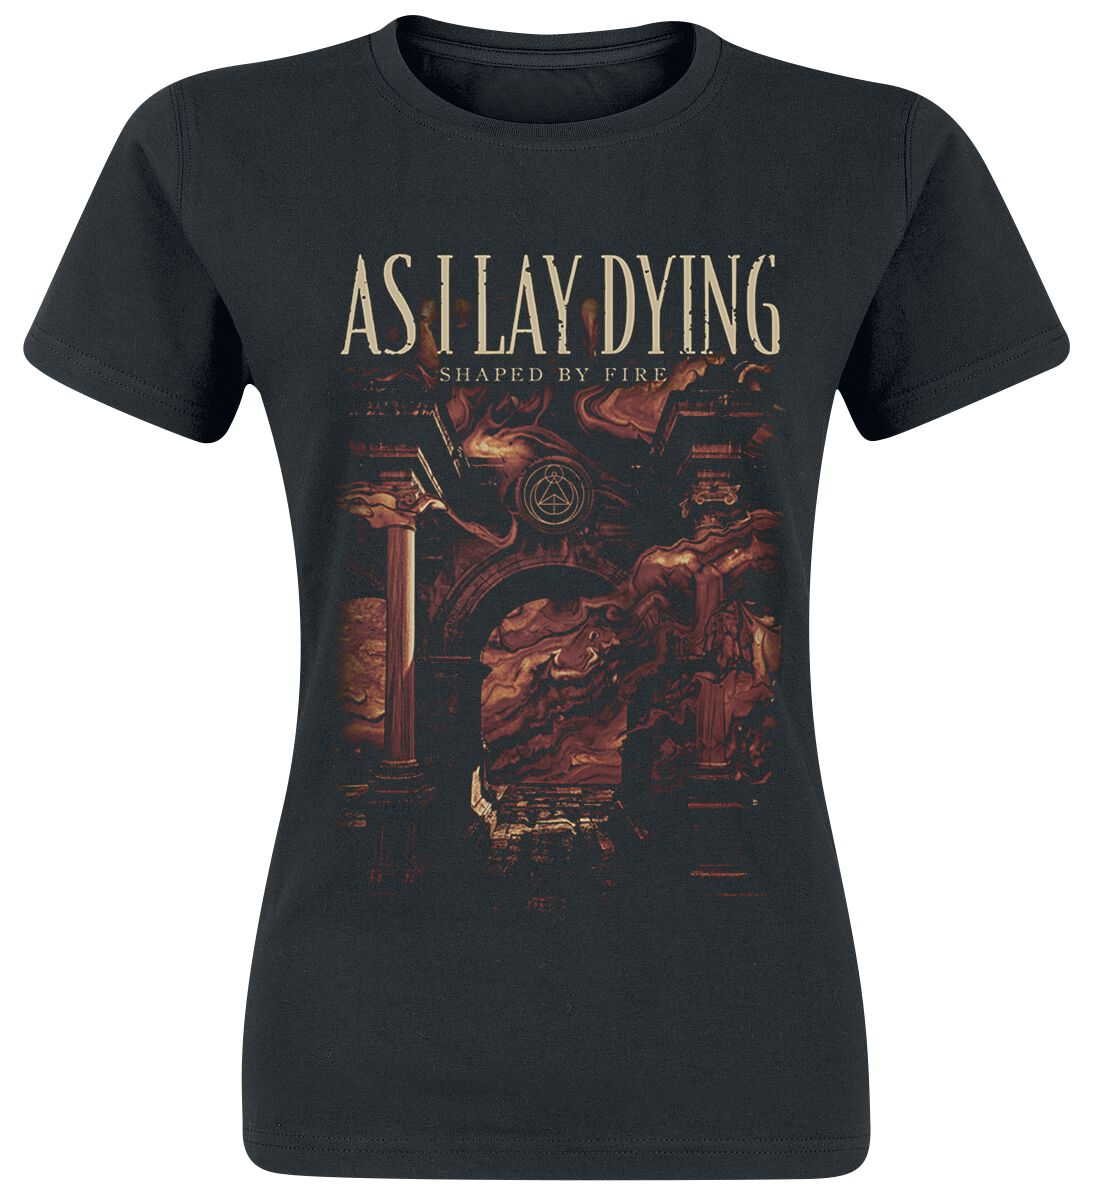 Image of As I Lay Dying Shaped By Fire Girl-Shirt schwarz